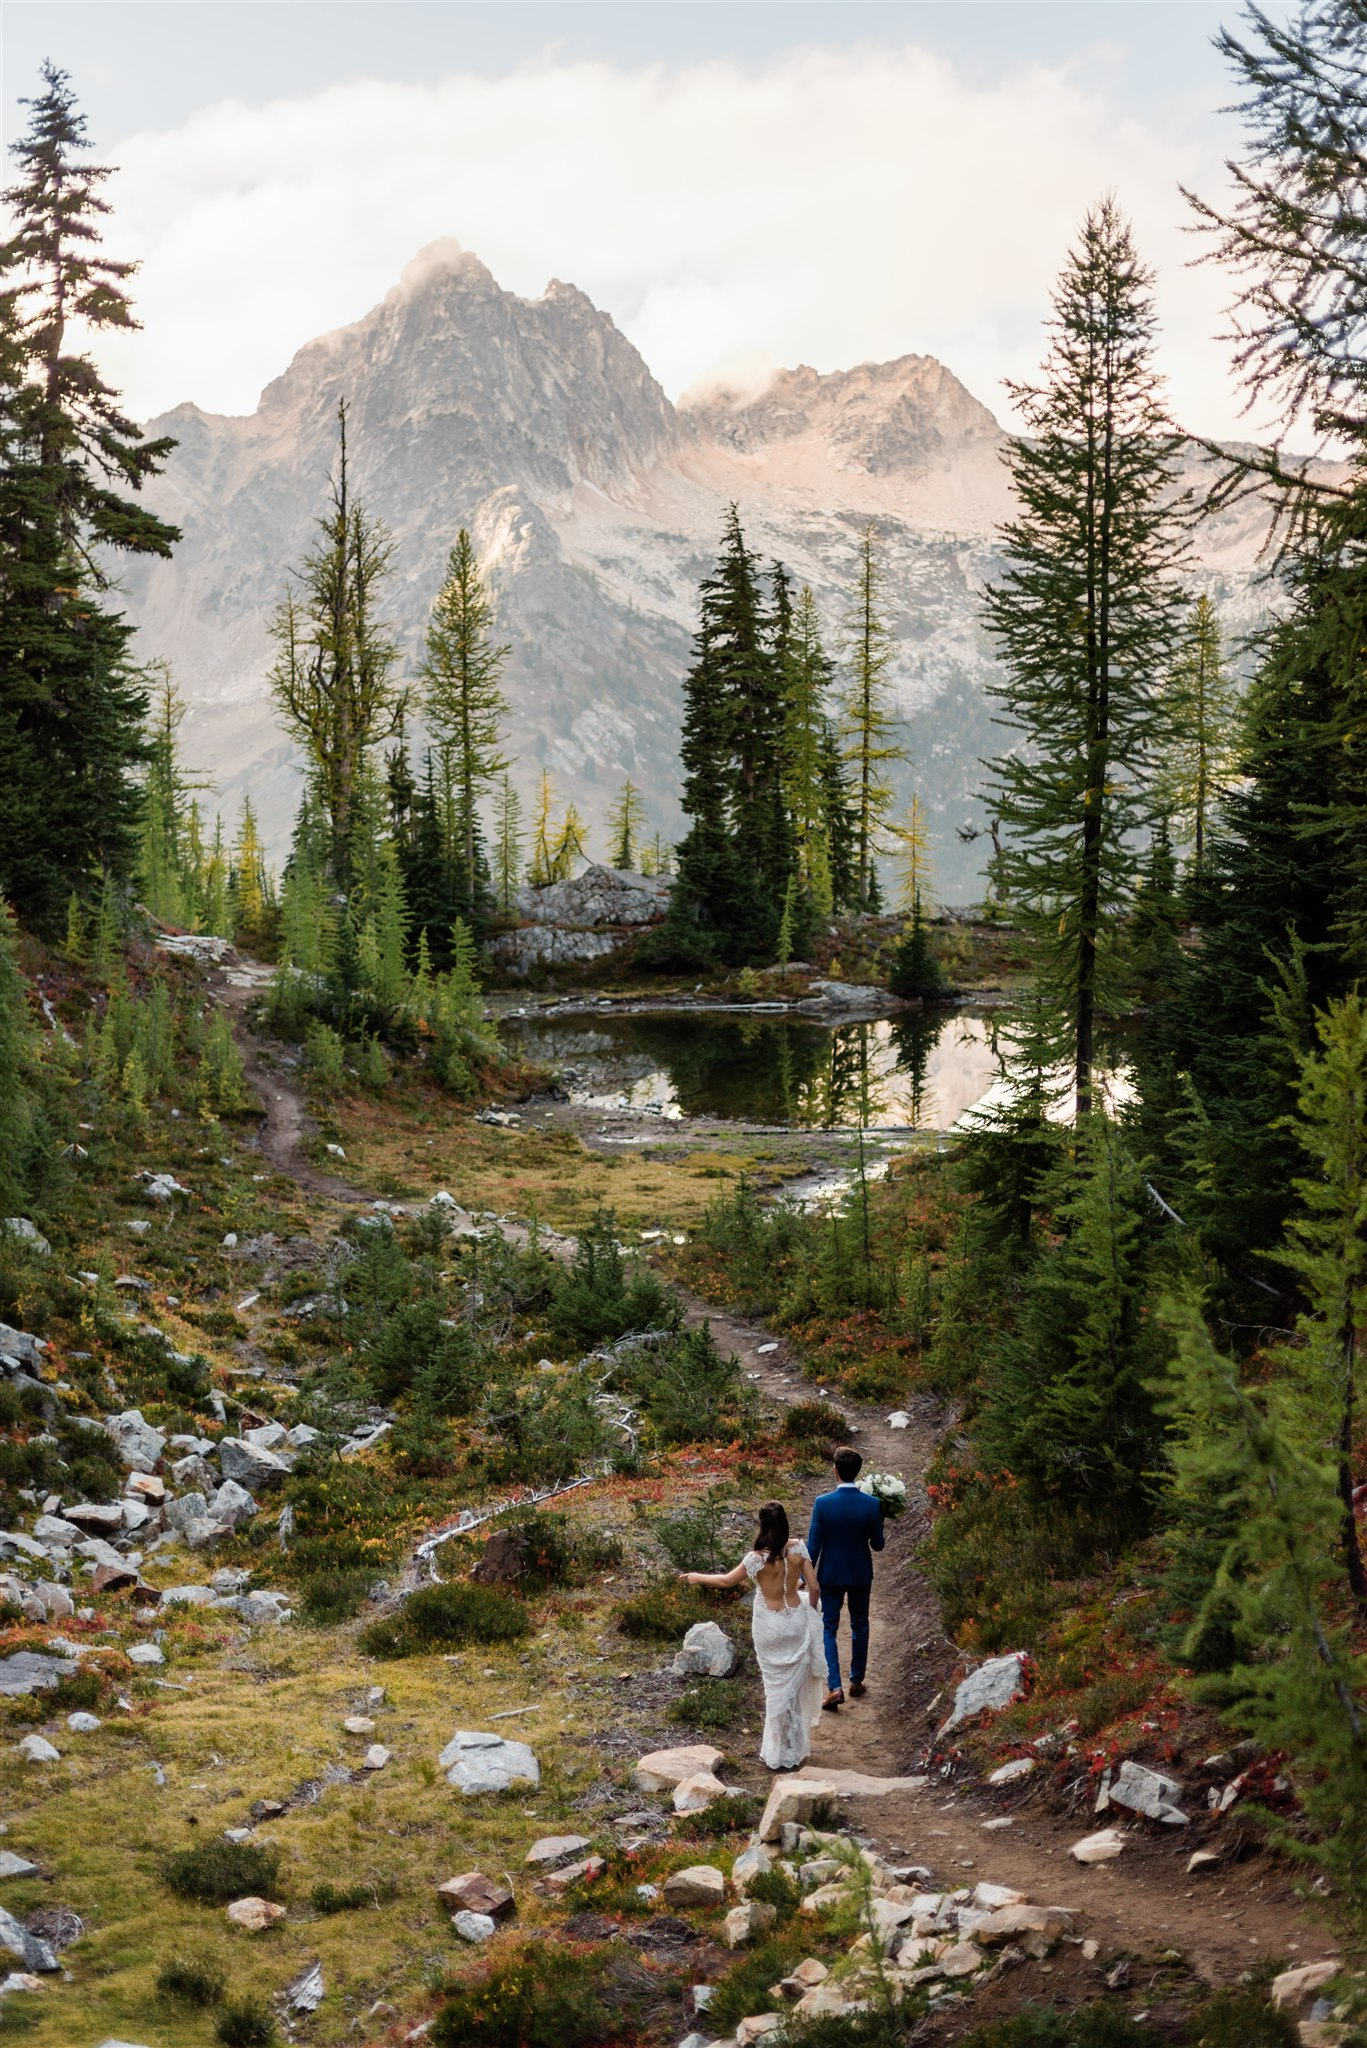 North Cascades adventure wedding, hiking wedding. Image by Forthright Photo.